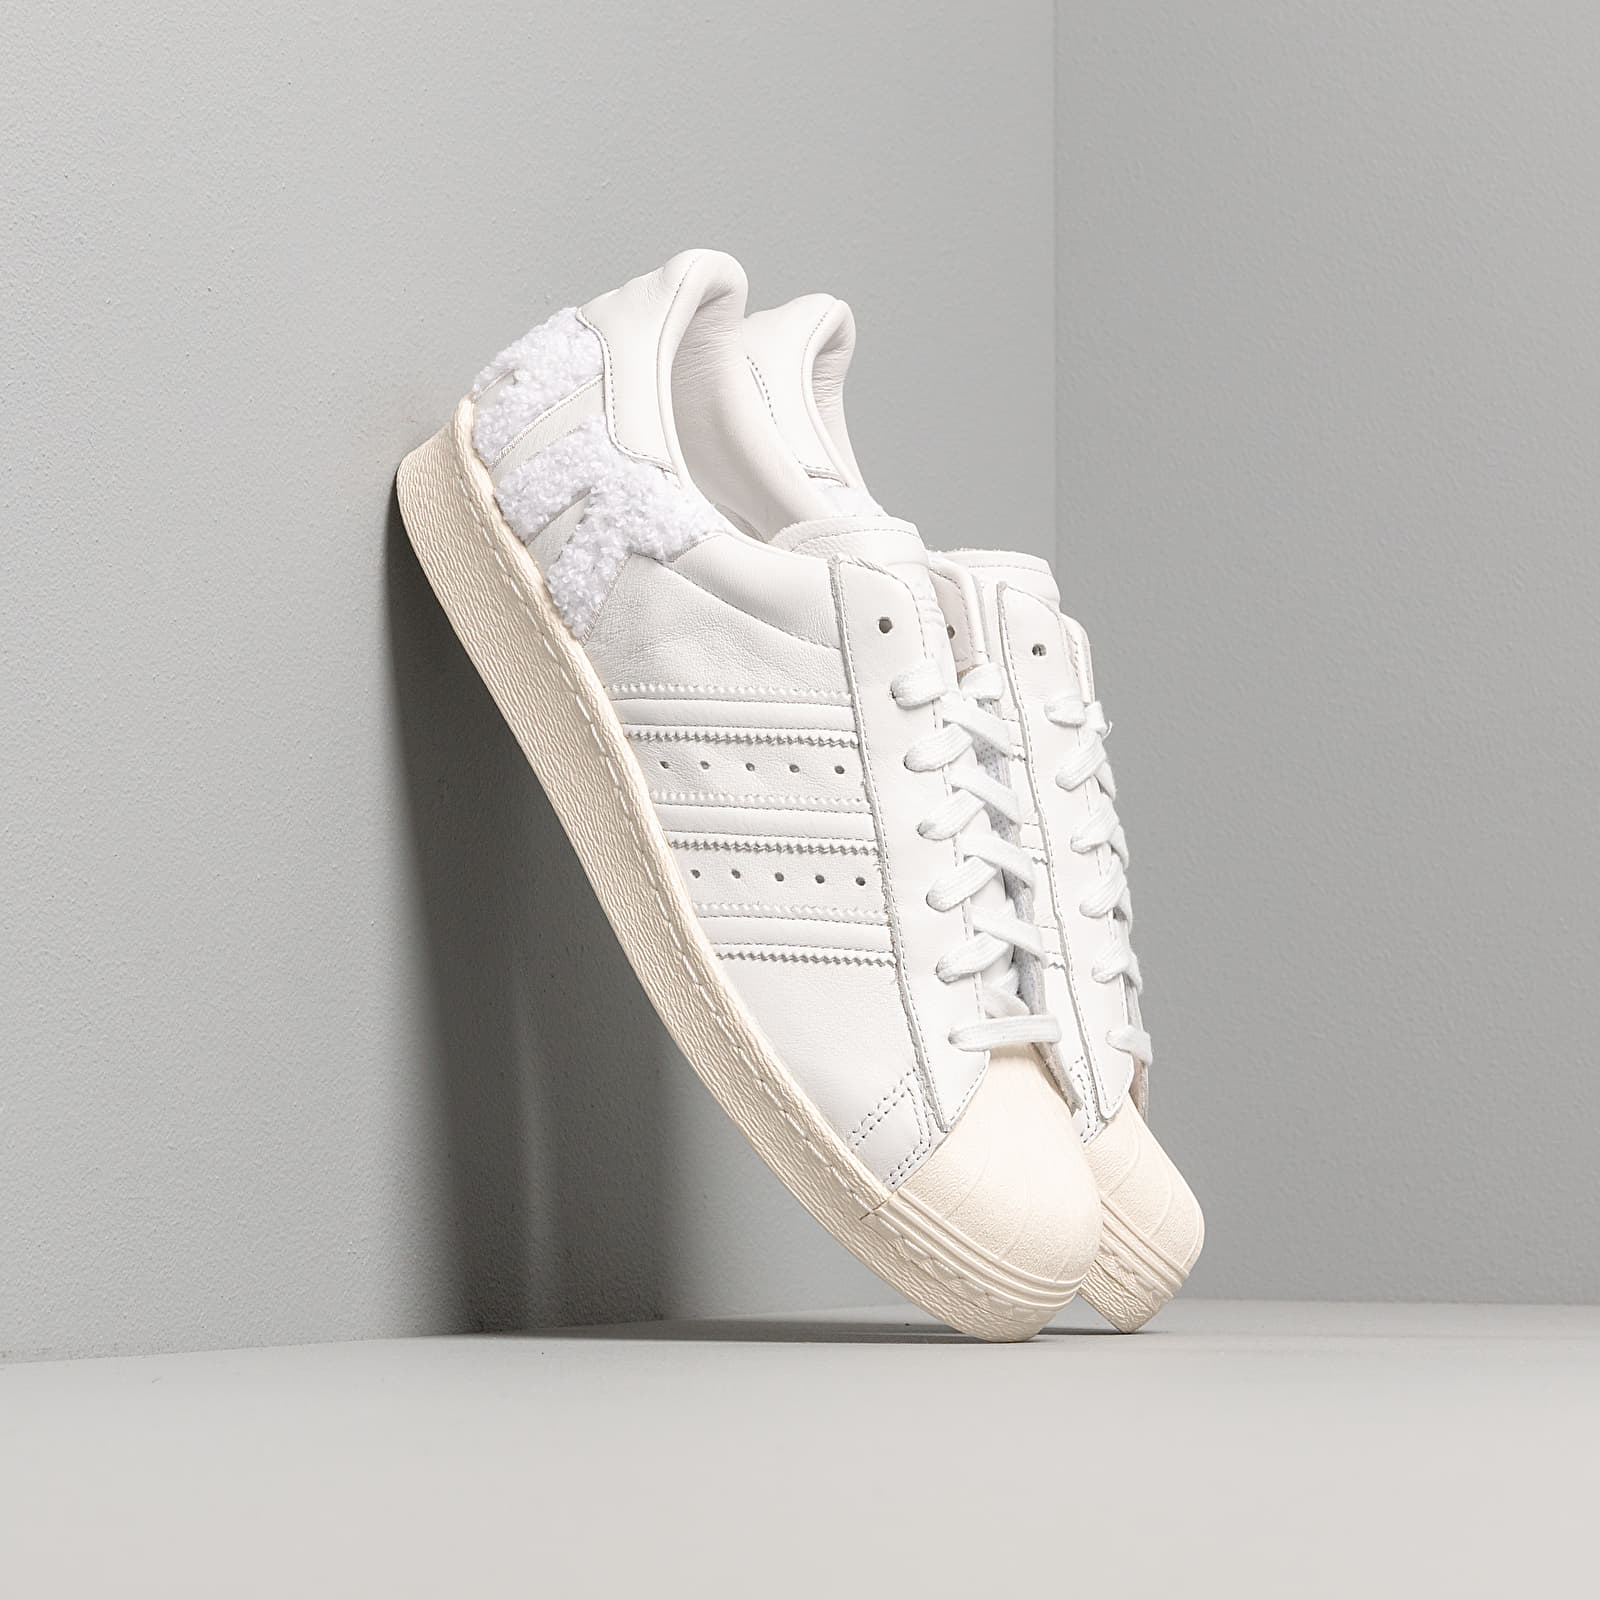 Мужская обувь adidas Superstar 80s Crystal White/ Crystal White/ Off White